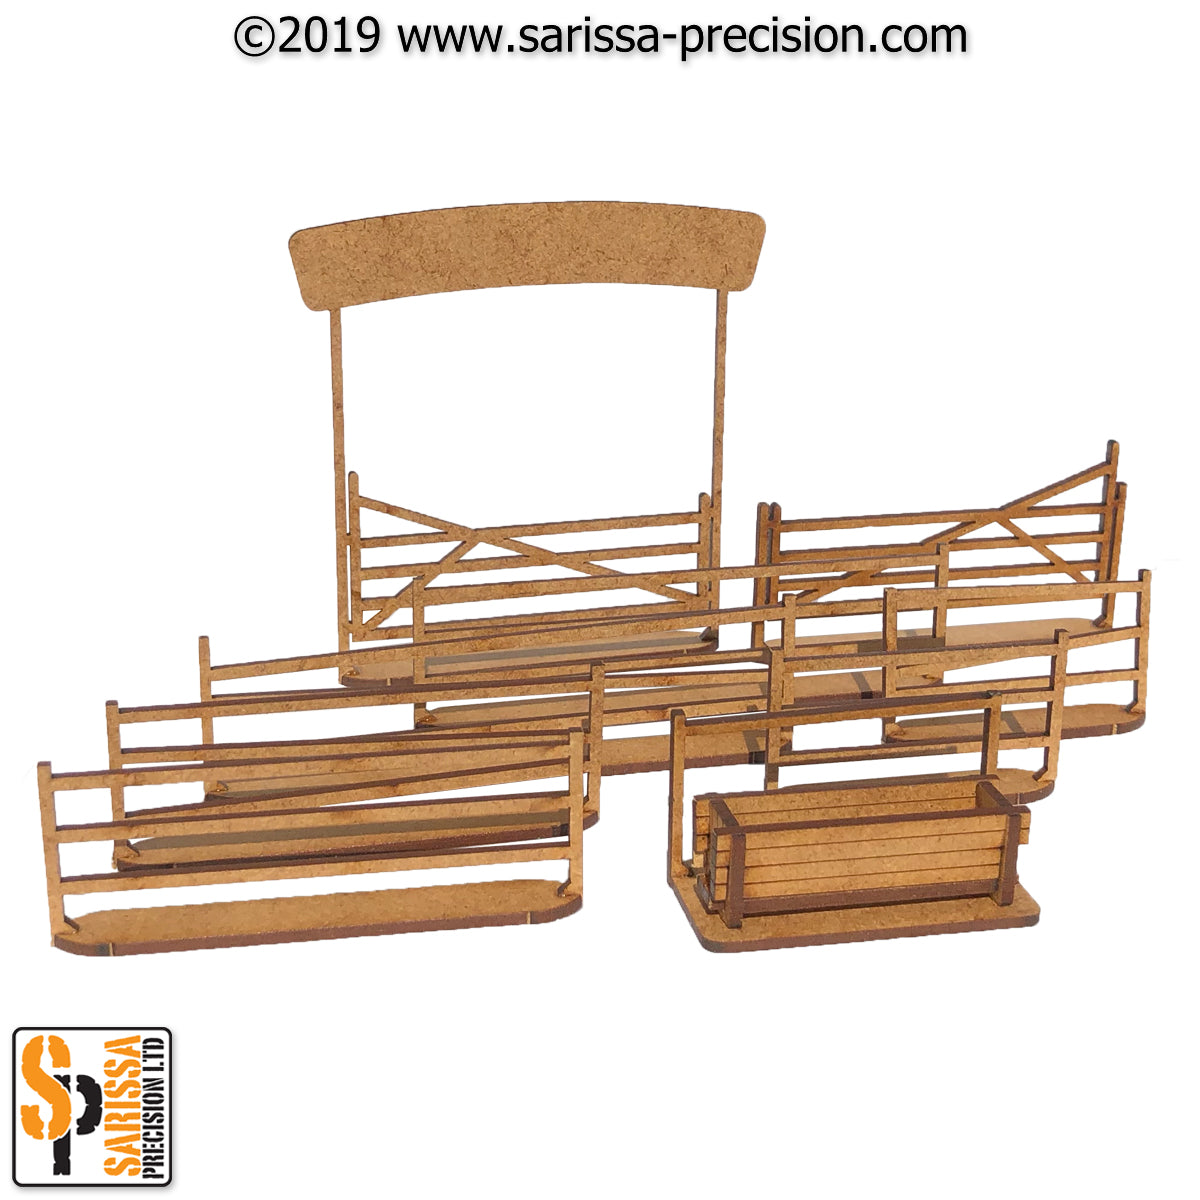 Ranch Fence Set